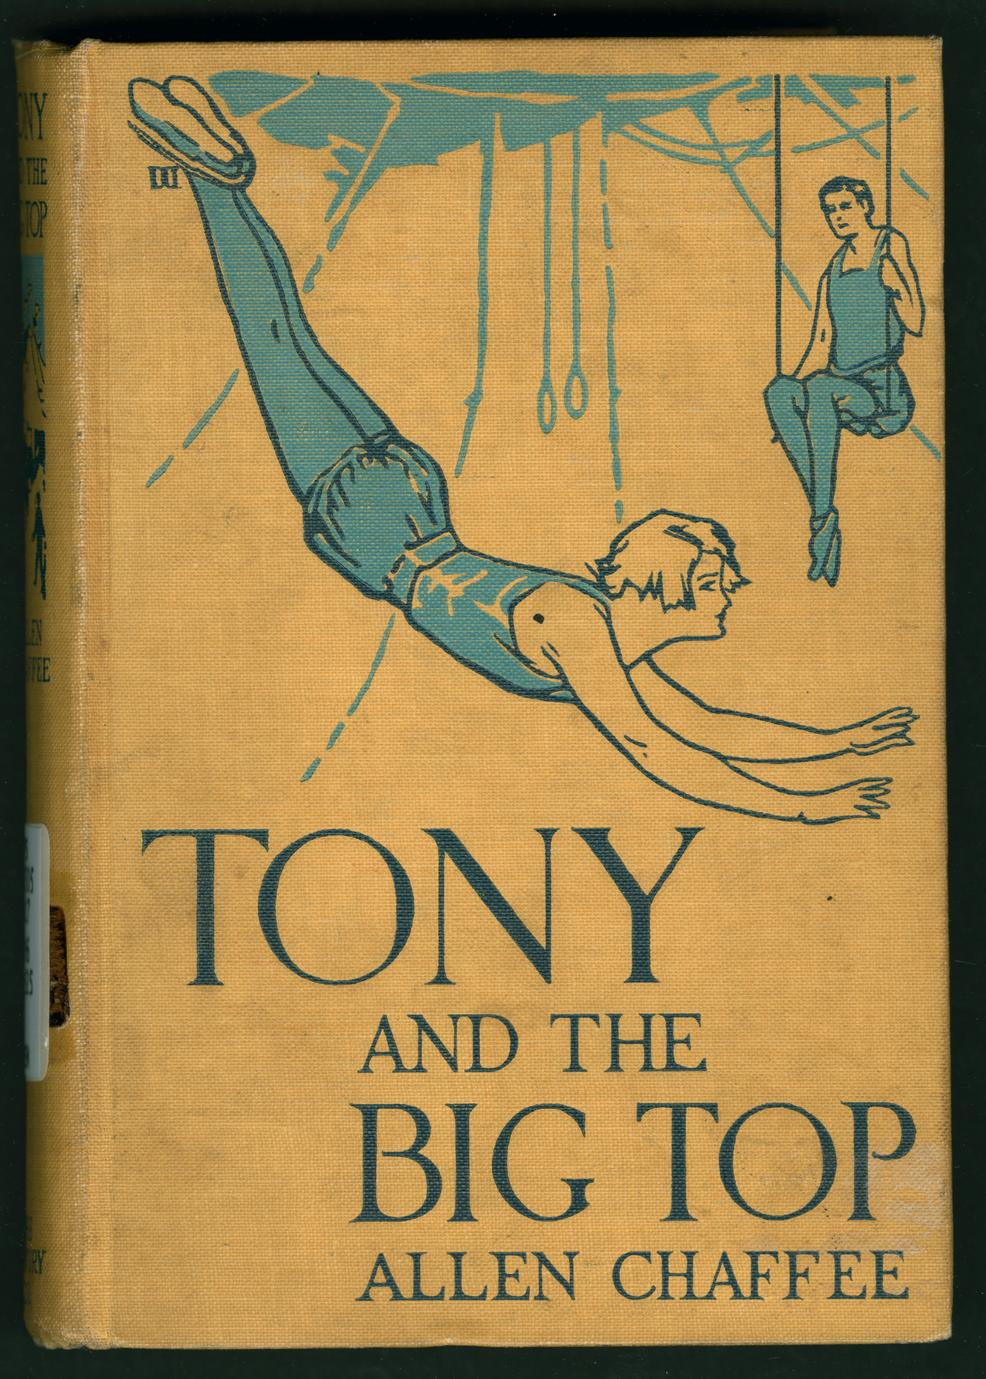 Tony and the big top (1 of 2)